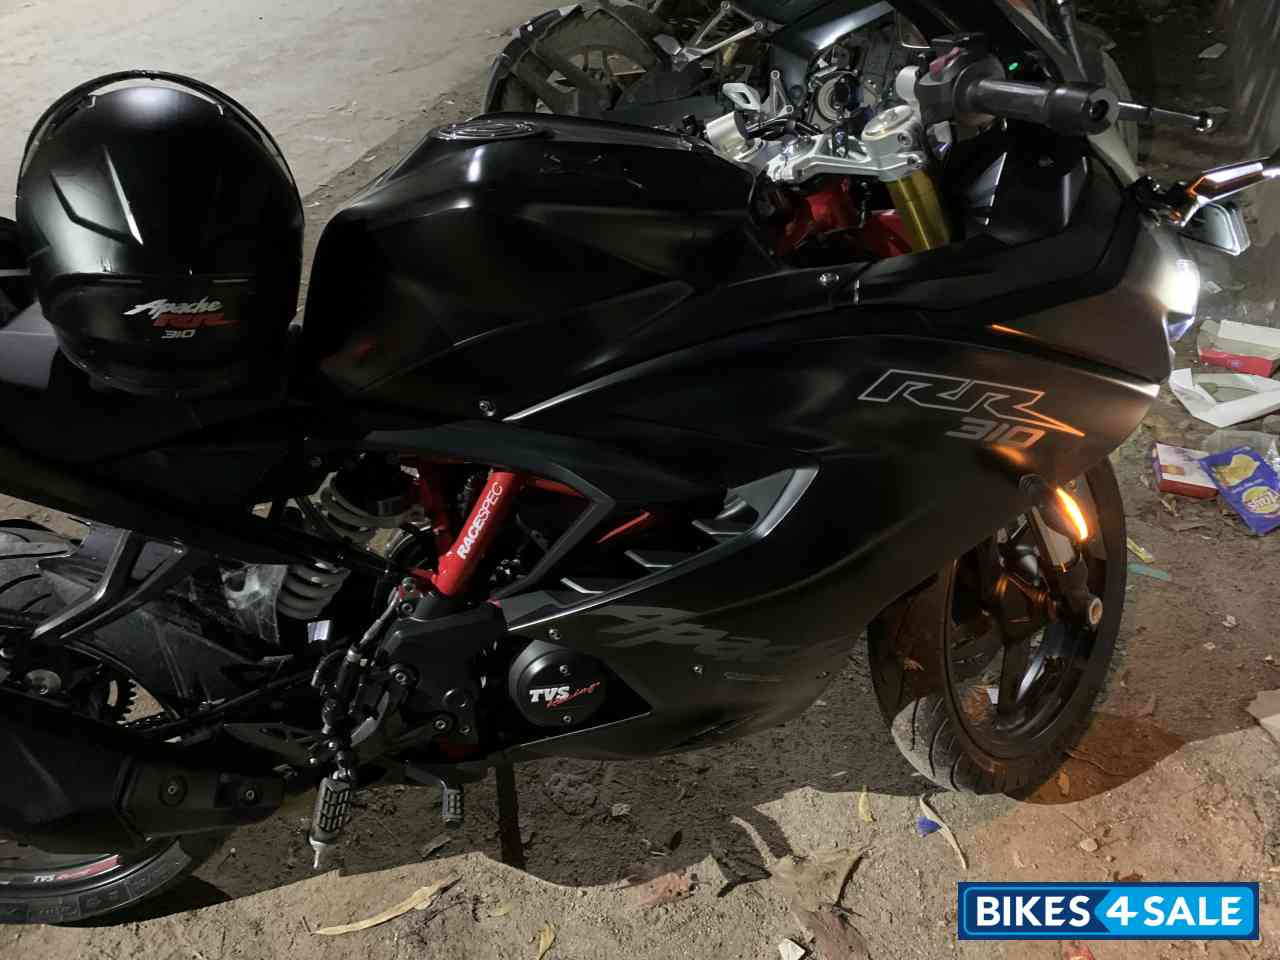 TVS Apache RTR 310 (Naked RR 310) Imagined by Yogi Sejwal